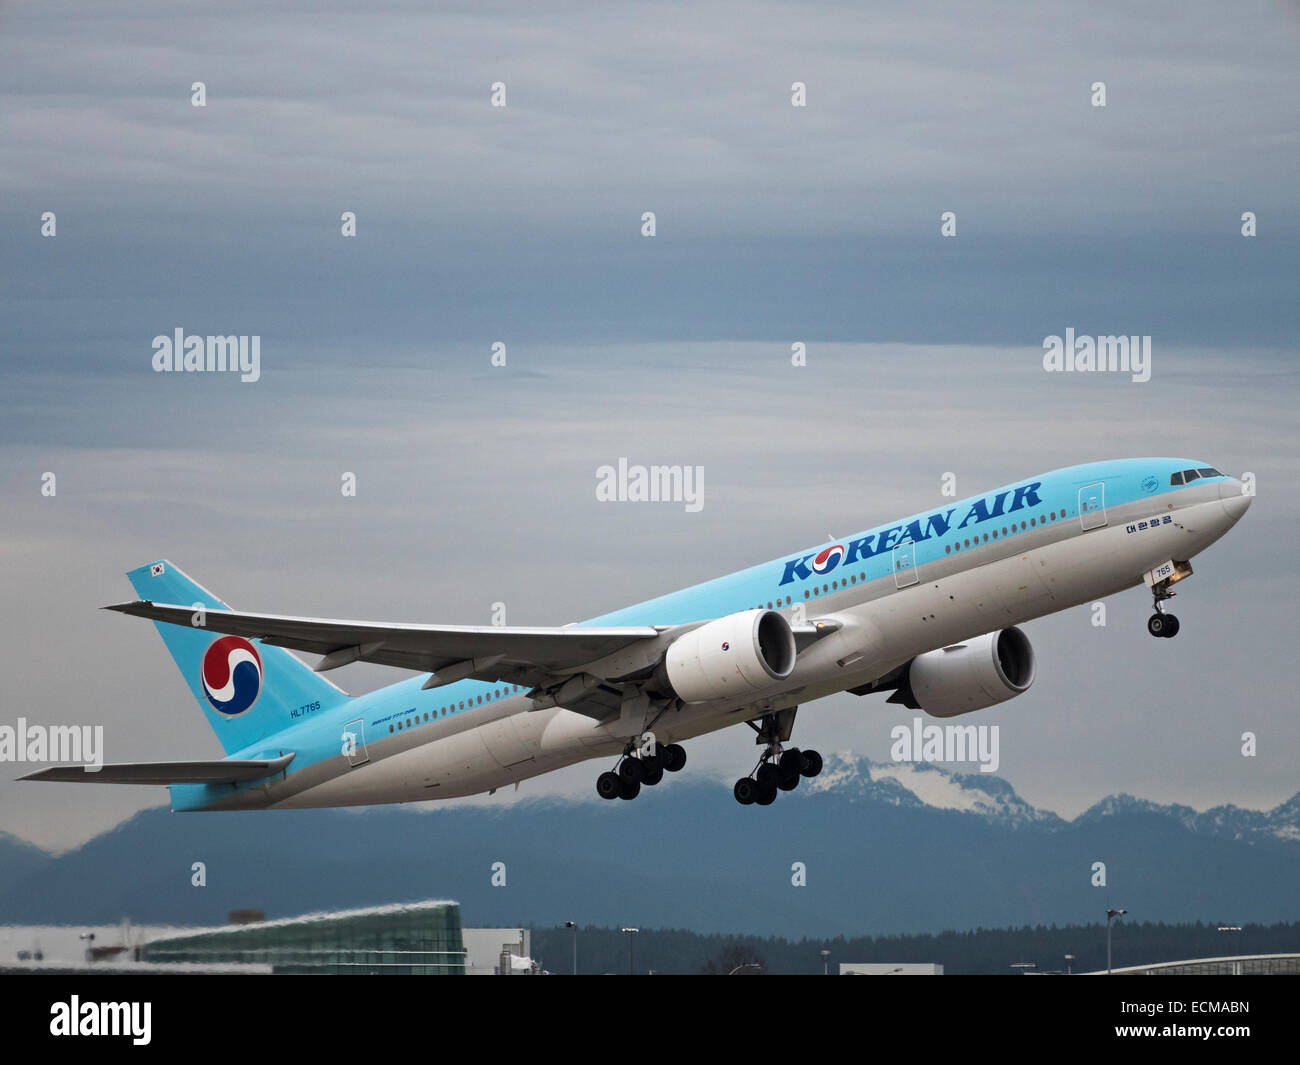 Korean Air airlines plane Boeing 777-200ER (HL7765) airliner taking off  Vancouver International Airport - Stock Image